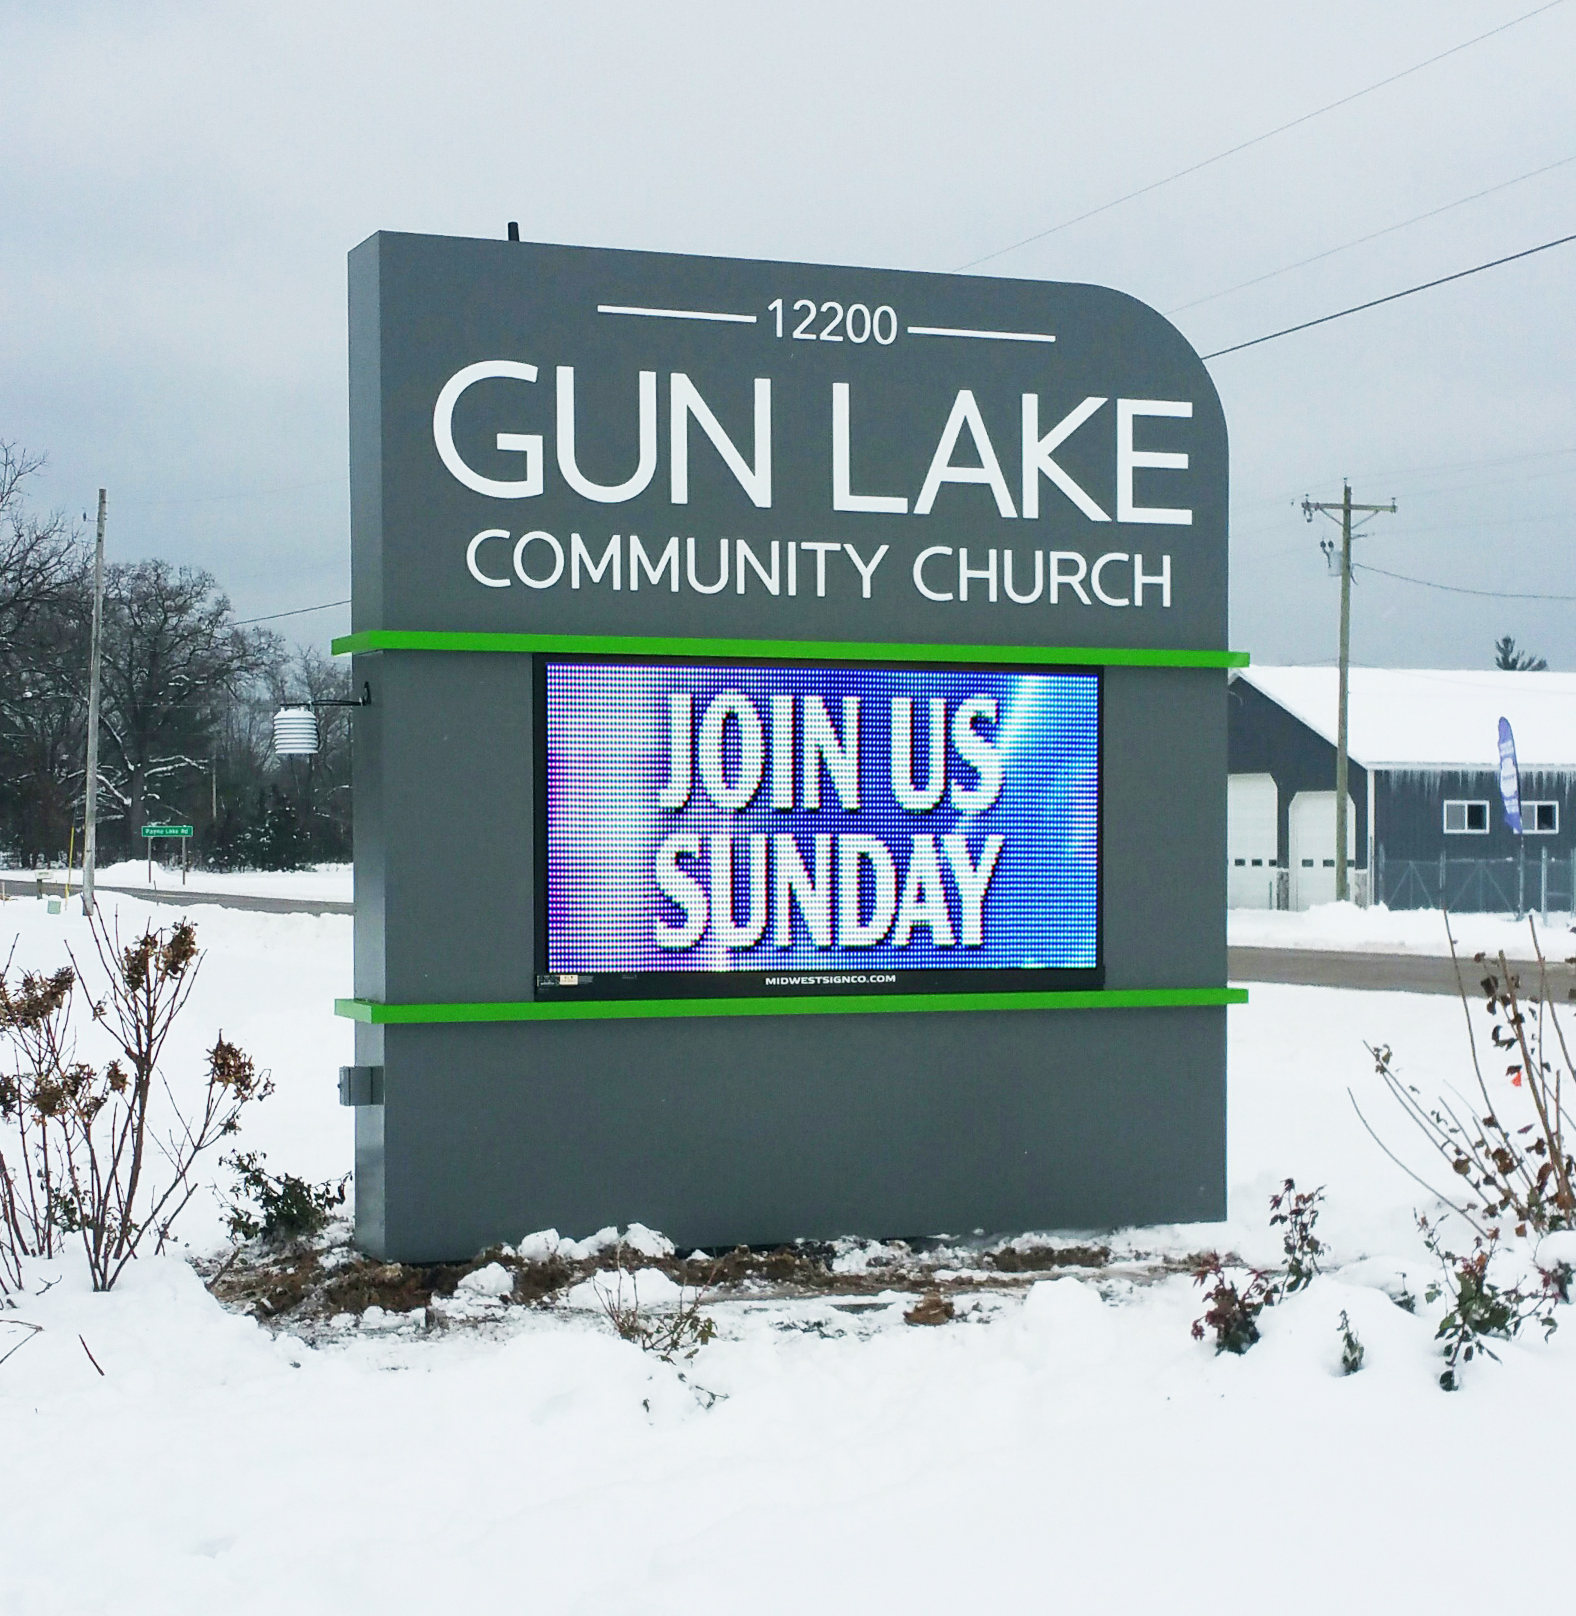 Gun Lake community church